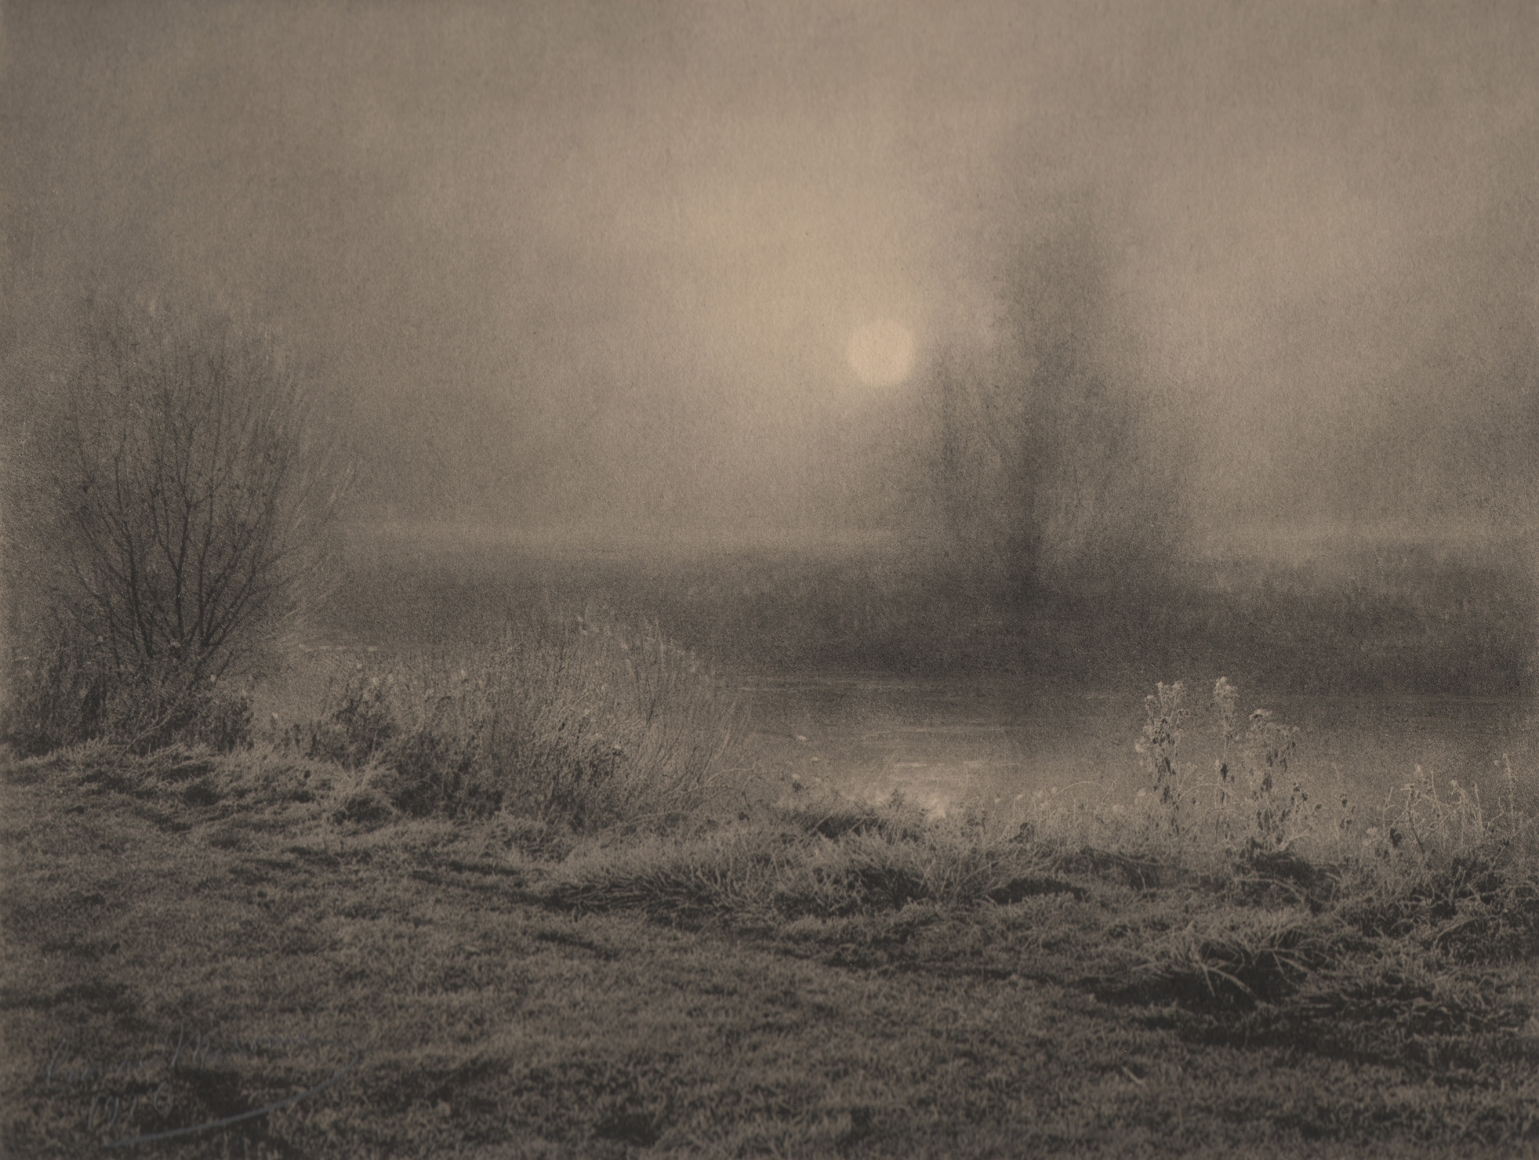 14. Léonard Misonne, Aurora a'hiver, 1926. Frosted brush and trees alongside a river in hazy sunlight. Sepia-toned print.